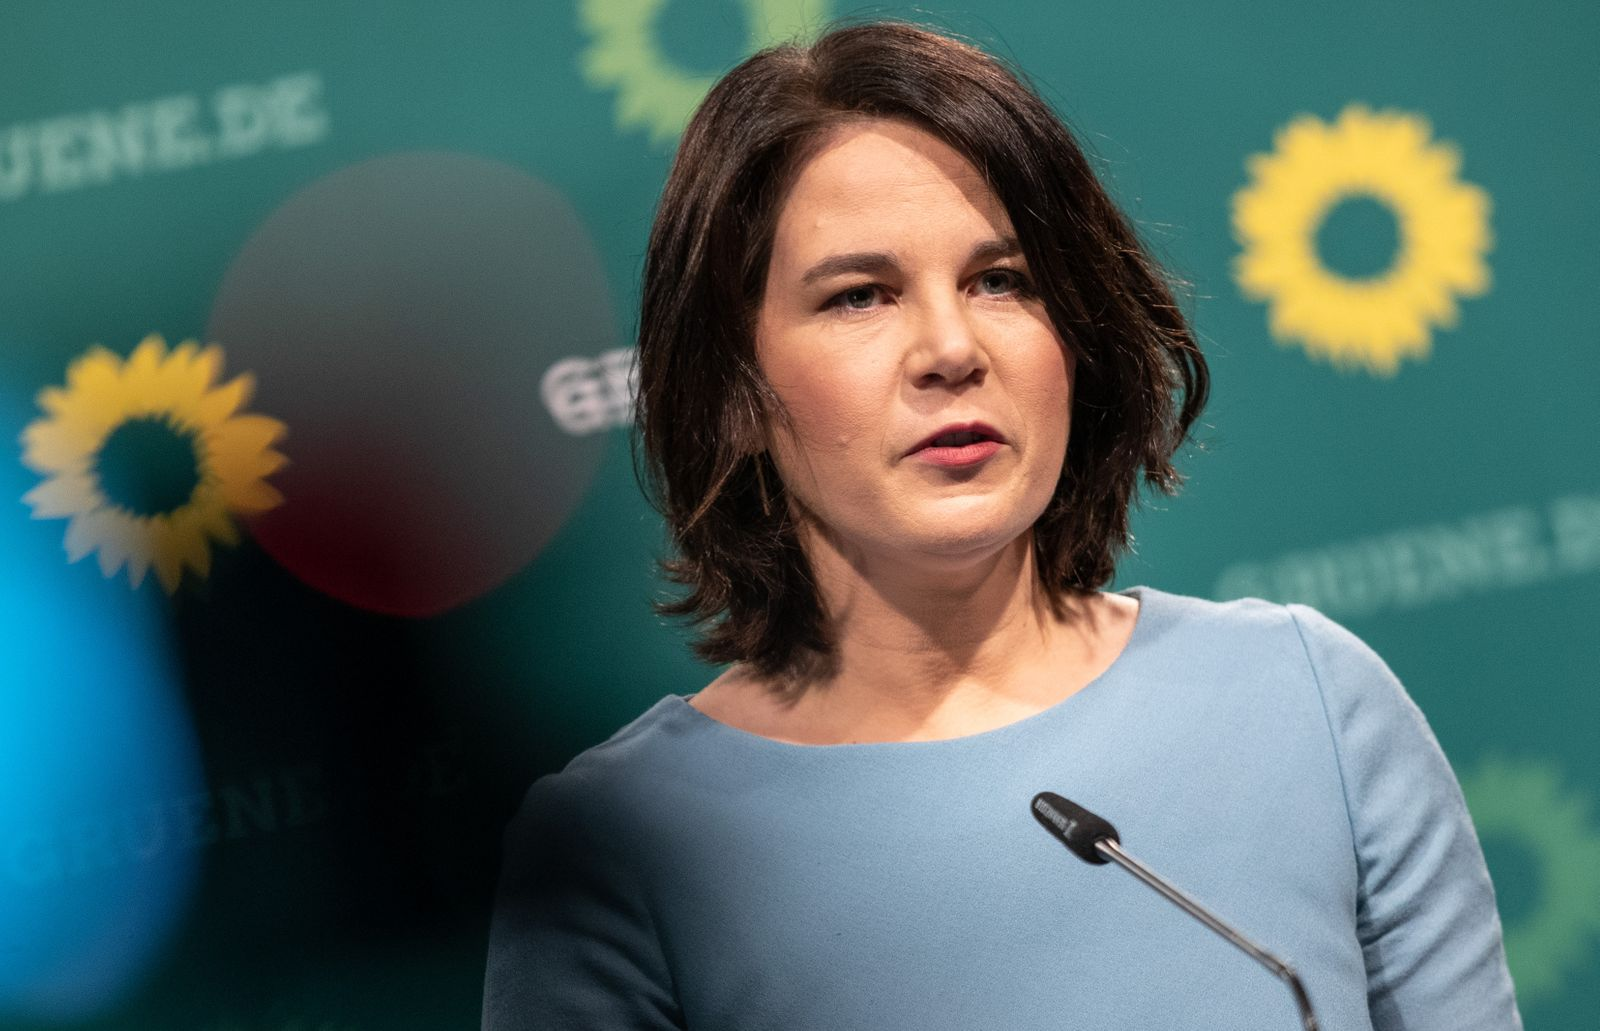 Greens Party Chancellor Candidate Annalena Baerbock Press Conference